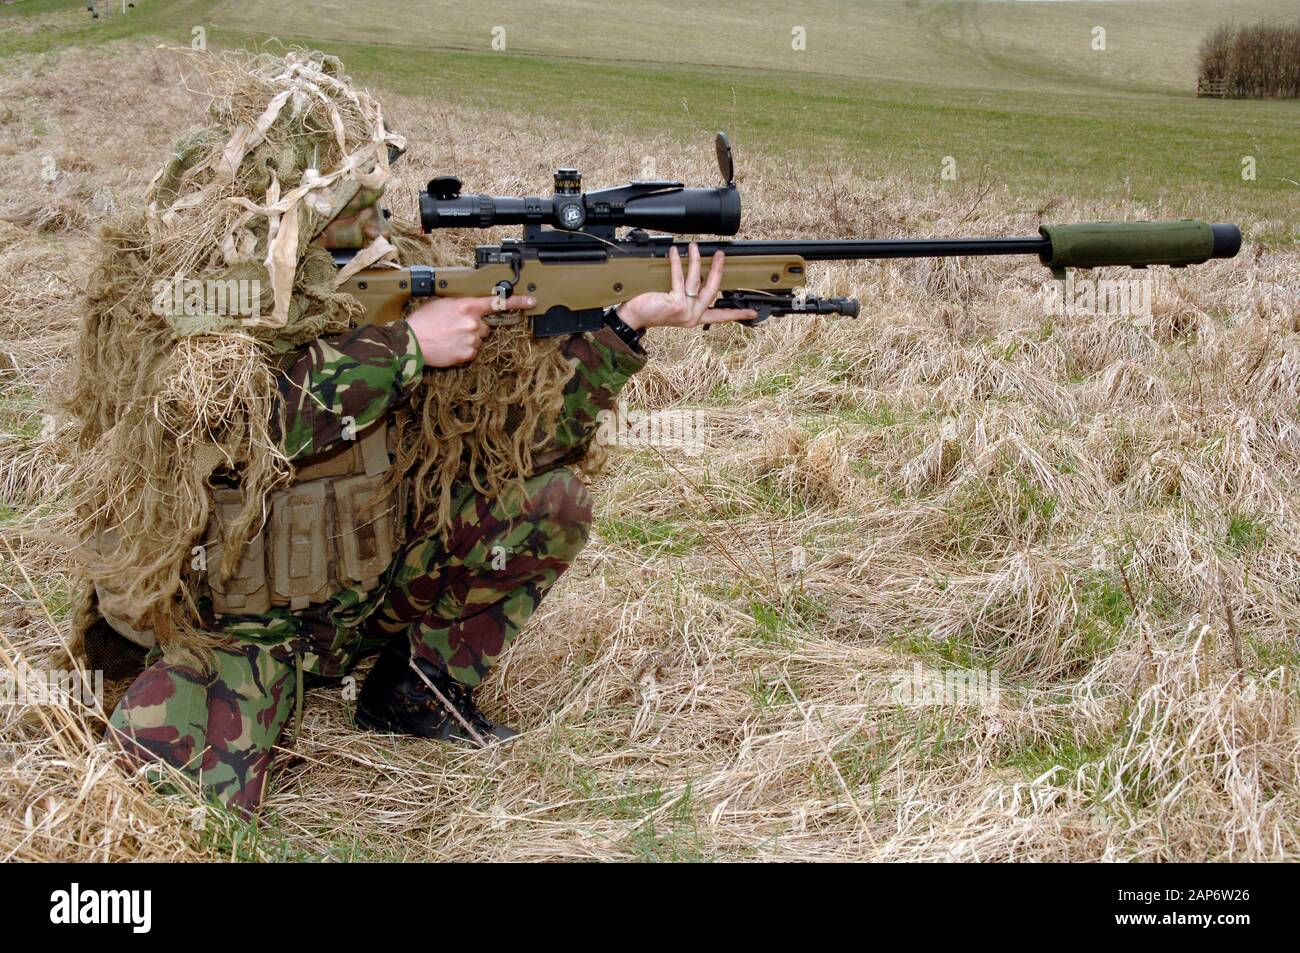 British Infantryman With A Long Range Sniper Rifle L115a3 Which Has A Killing Capability From Over A Mile Stock Photo Alamy